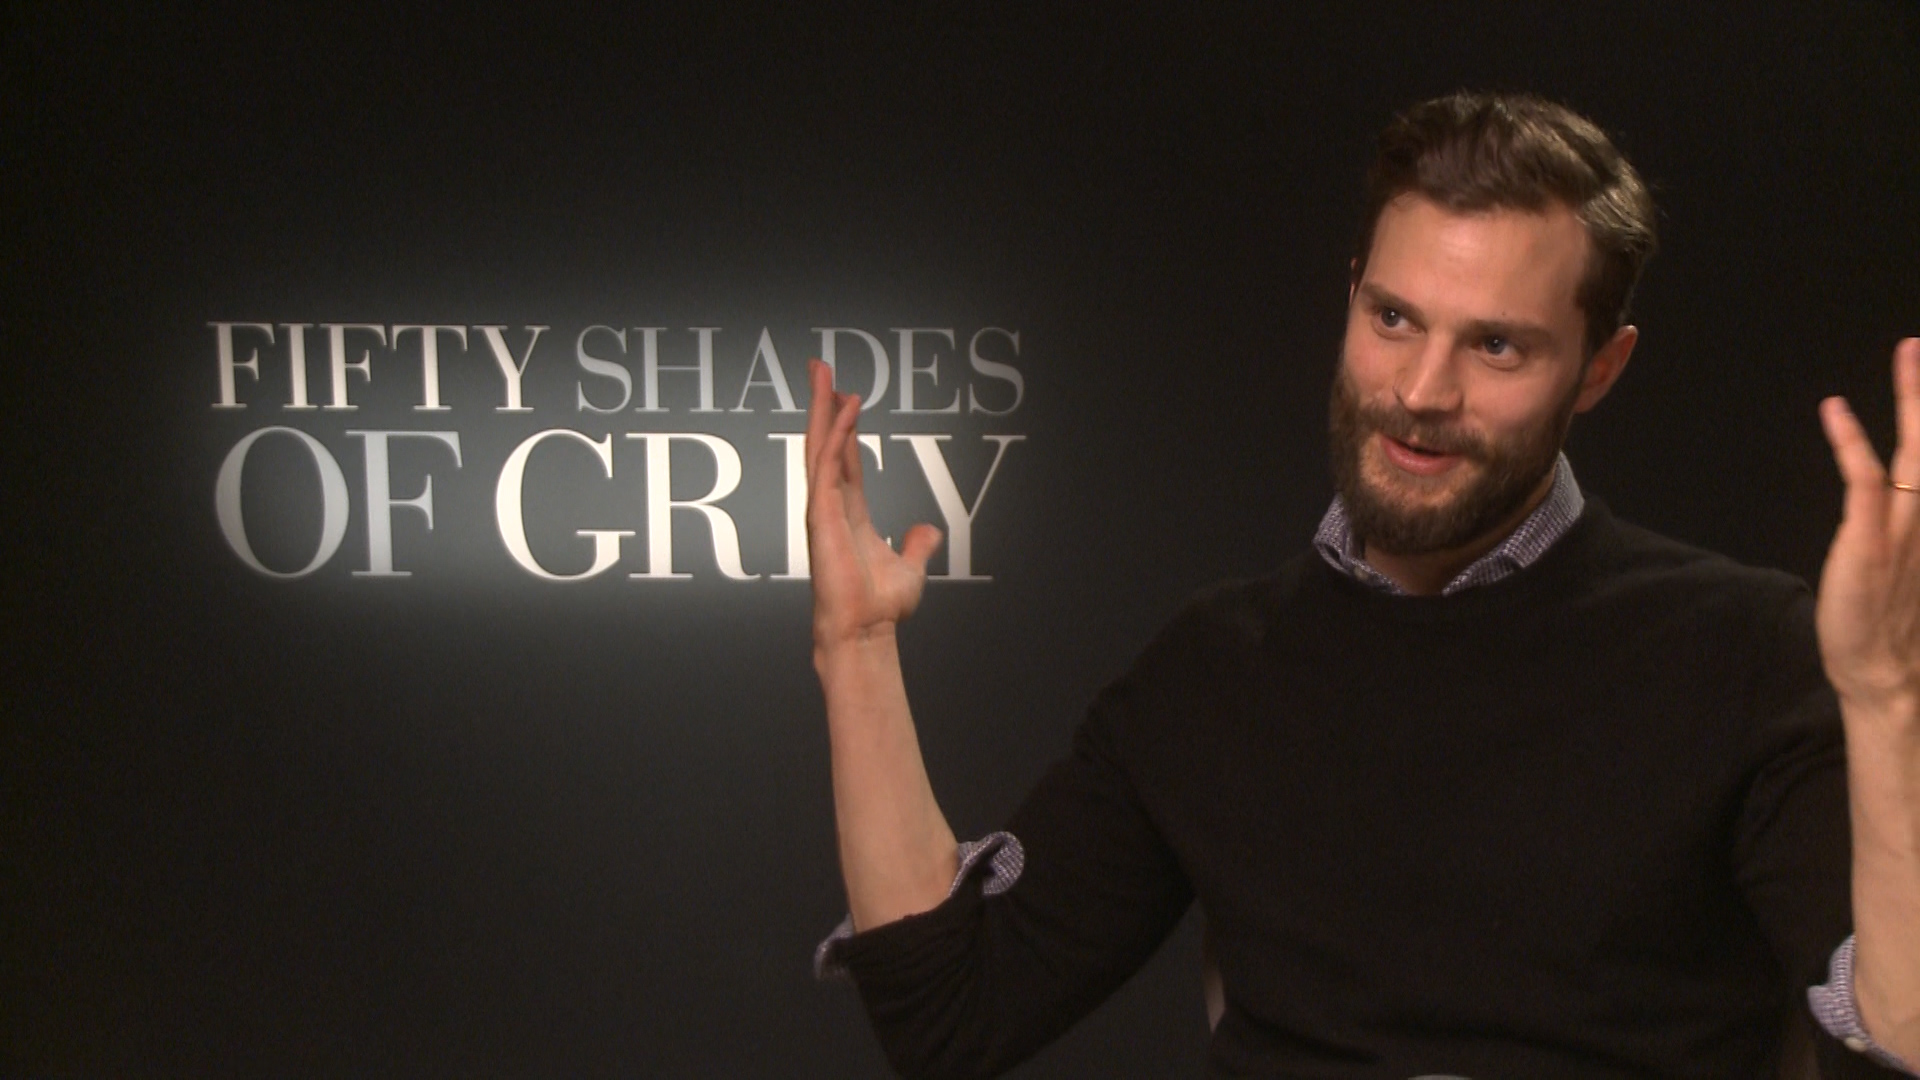 Video interviews fifty shades of grey stars jamie dornan for When does fifty shades of grey